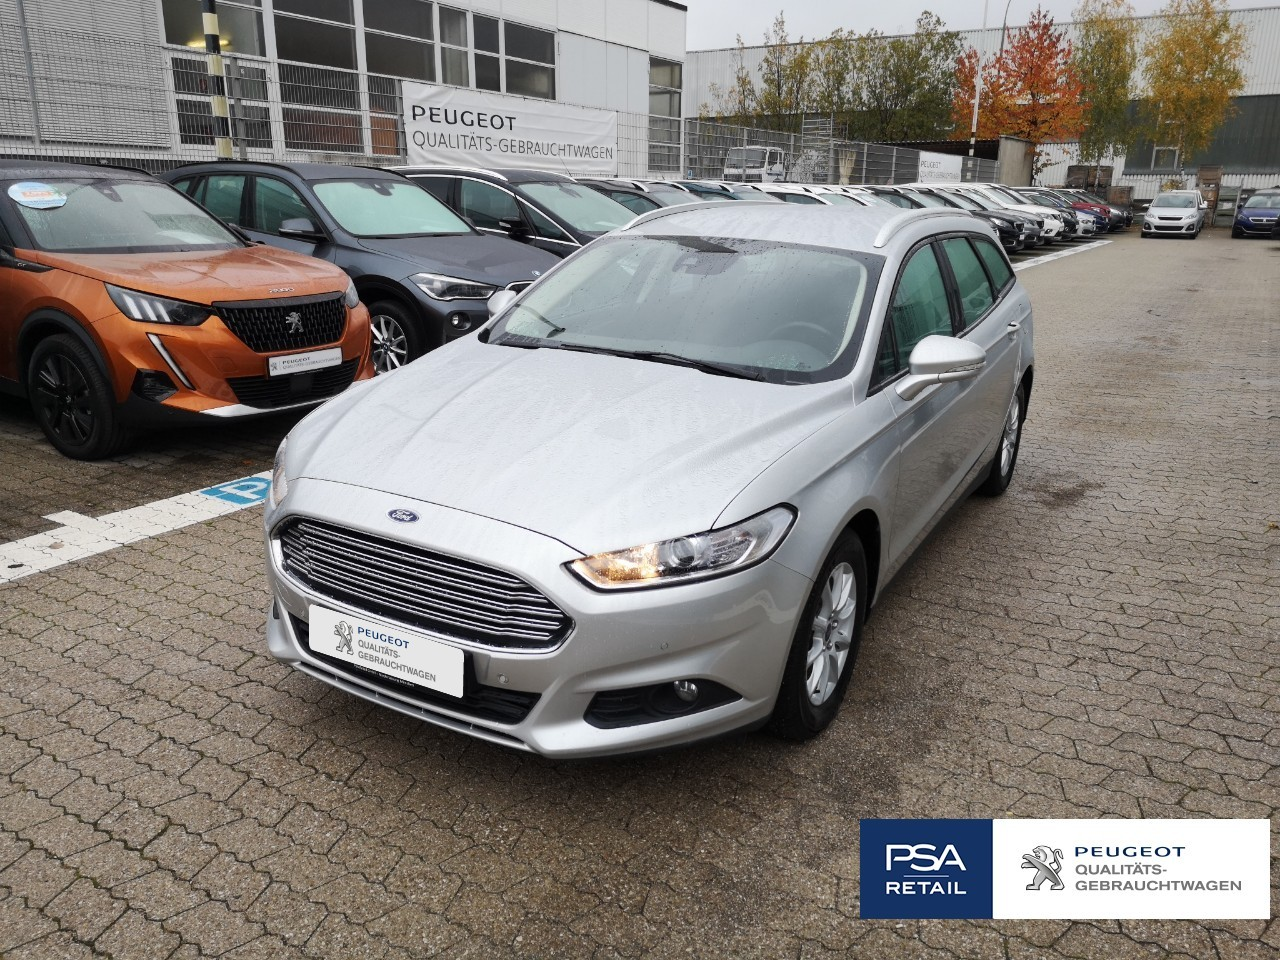 Ford Mondeo Turnier 2.0 TDCi Start-Stopp Business Edition